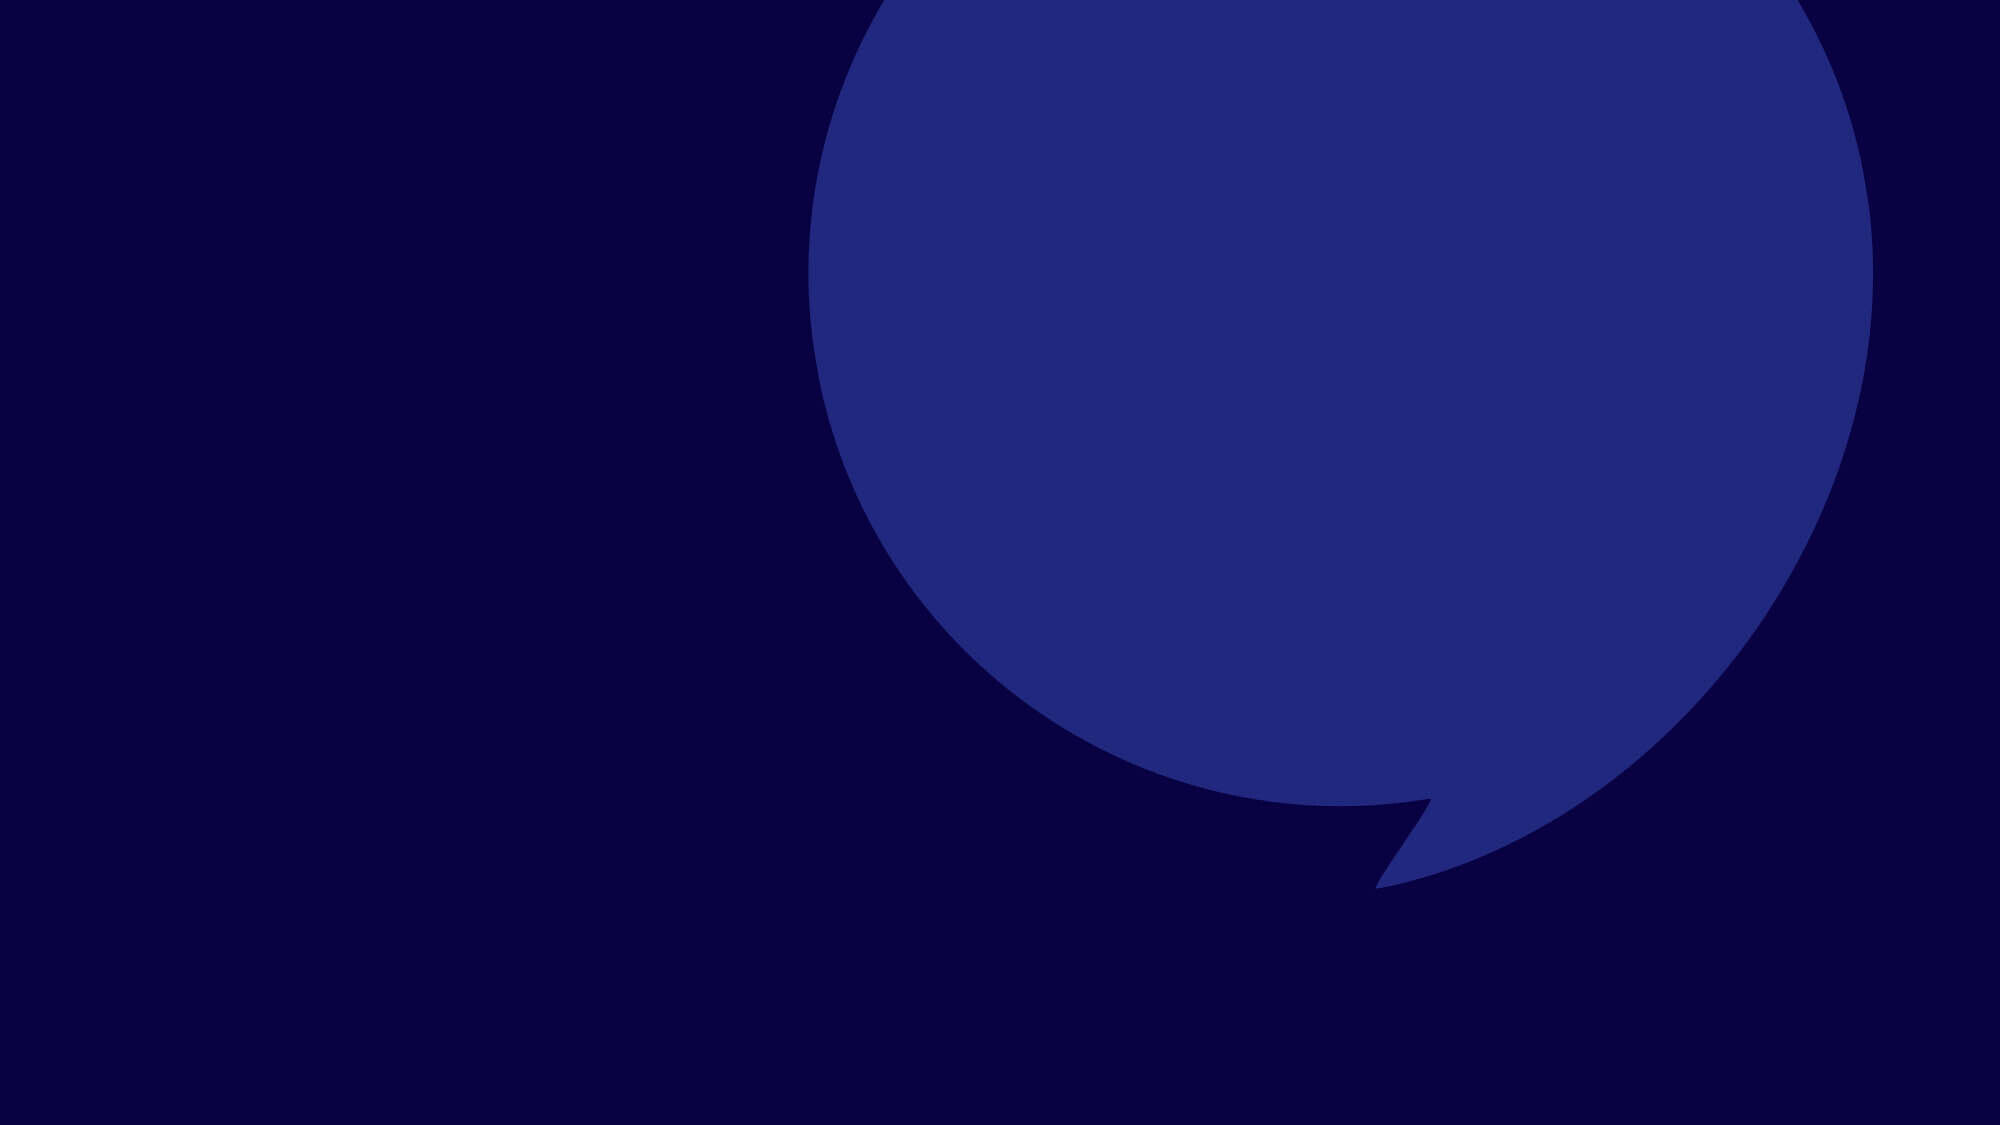 Speech bubble graphic on a dark blue background